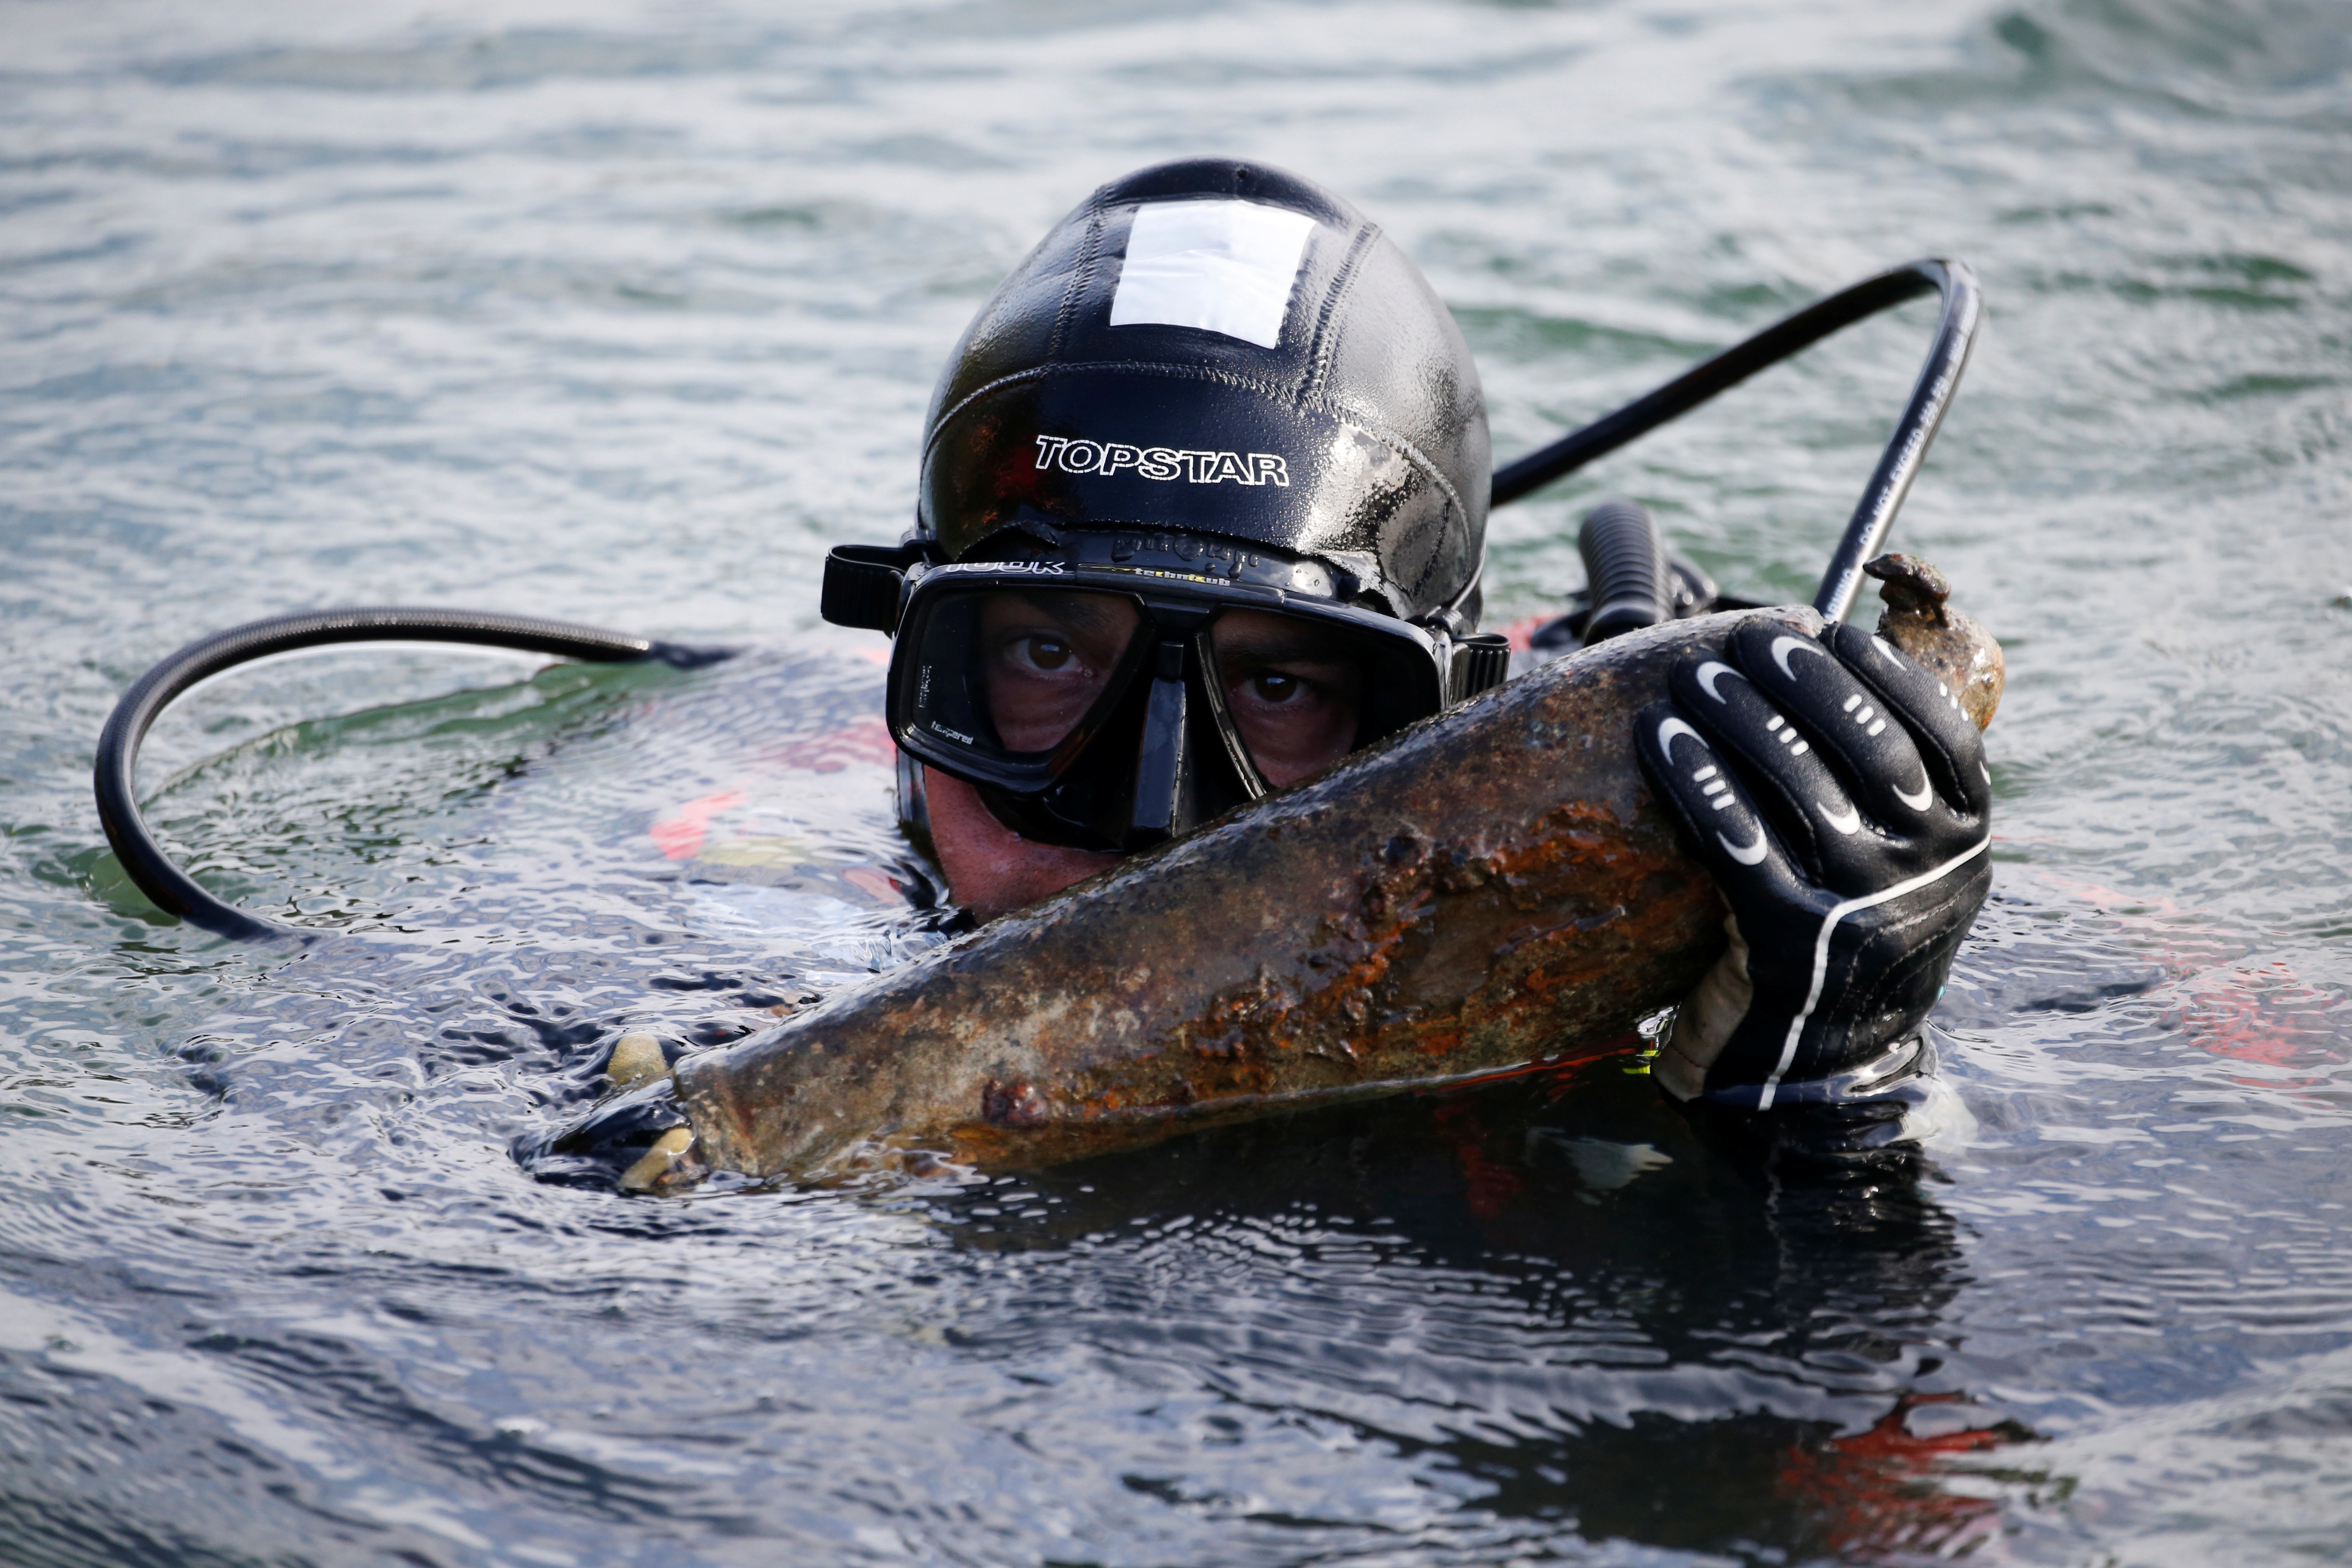 A diver from a bomb-disposal unit gies up the surface an unexploded shell recovered in the Meuse River at Sivry-sur-Meuse, close to WWI battlefields, near Verdun, France, October 23, 2018 before the centenial commemoration of the First World War Armistice Day. REUTERS/Pascal Rossignol